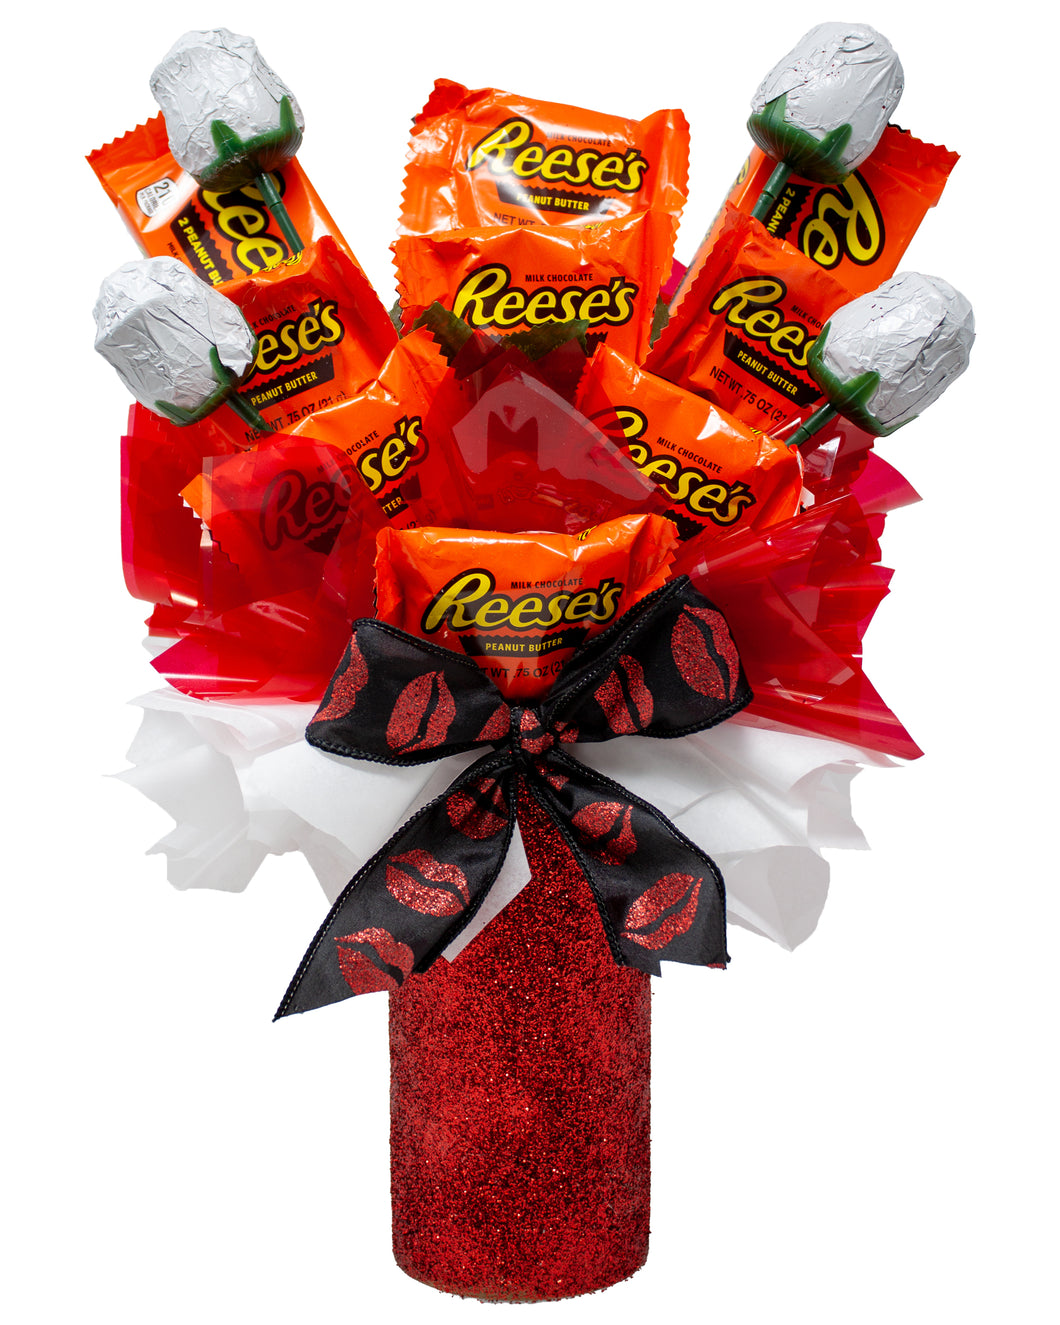 Reese's and Chocolate Roses Valentine's Candy Bouquet